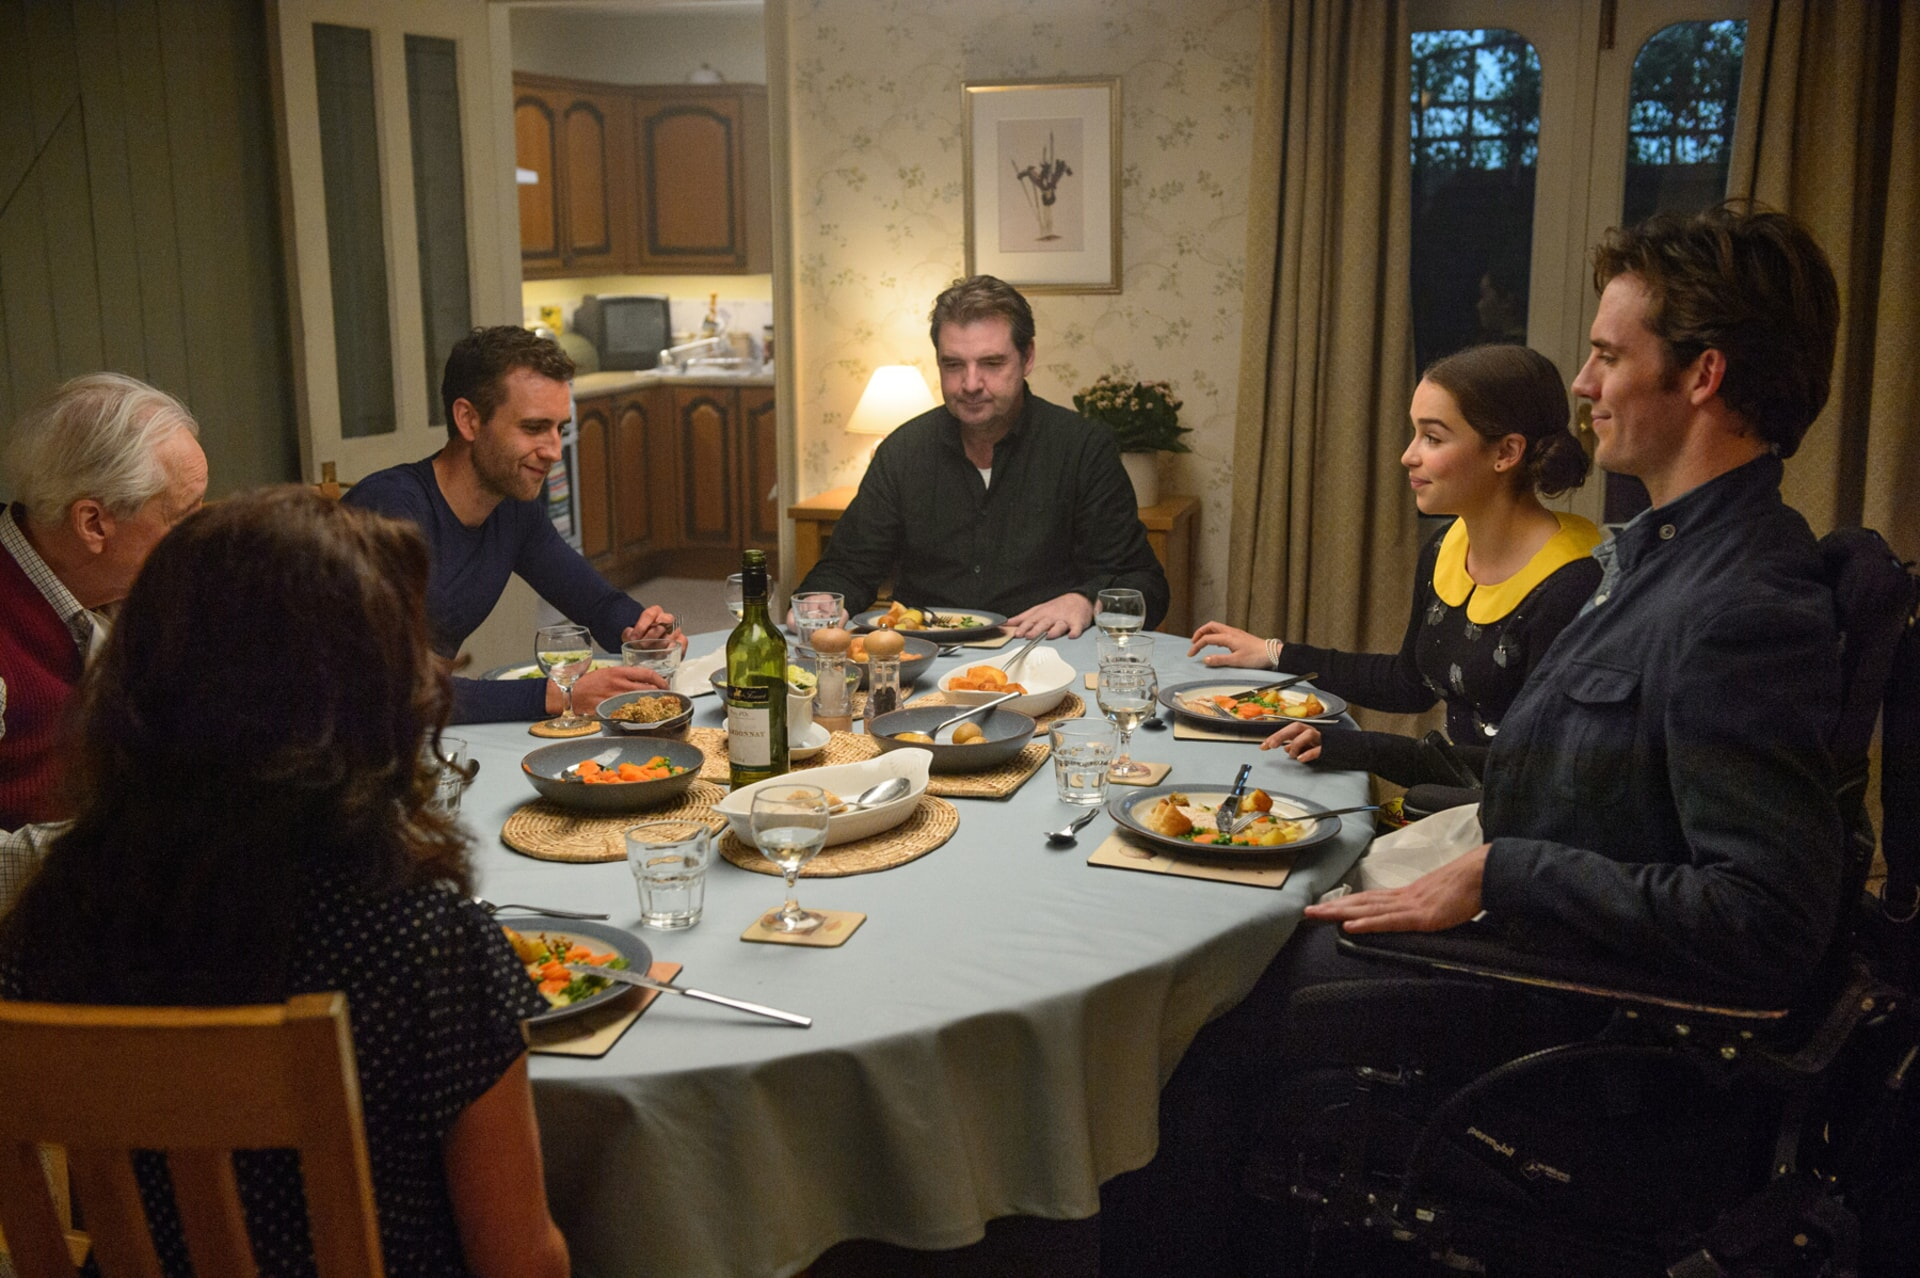 SAM CLAFLIN as Will Traynor, EMILIA CLARKE as Lou Clark, BRENDAN COYLE as Bernard Clark and MATTHEW LEWIS as Patrick sitting at a family-style dinner.